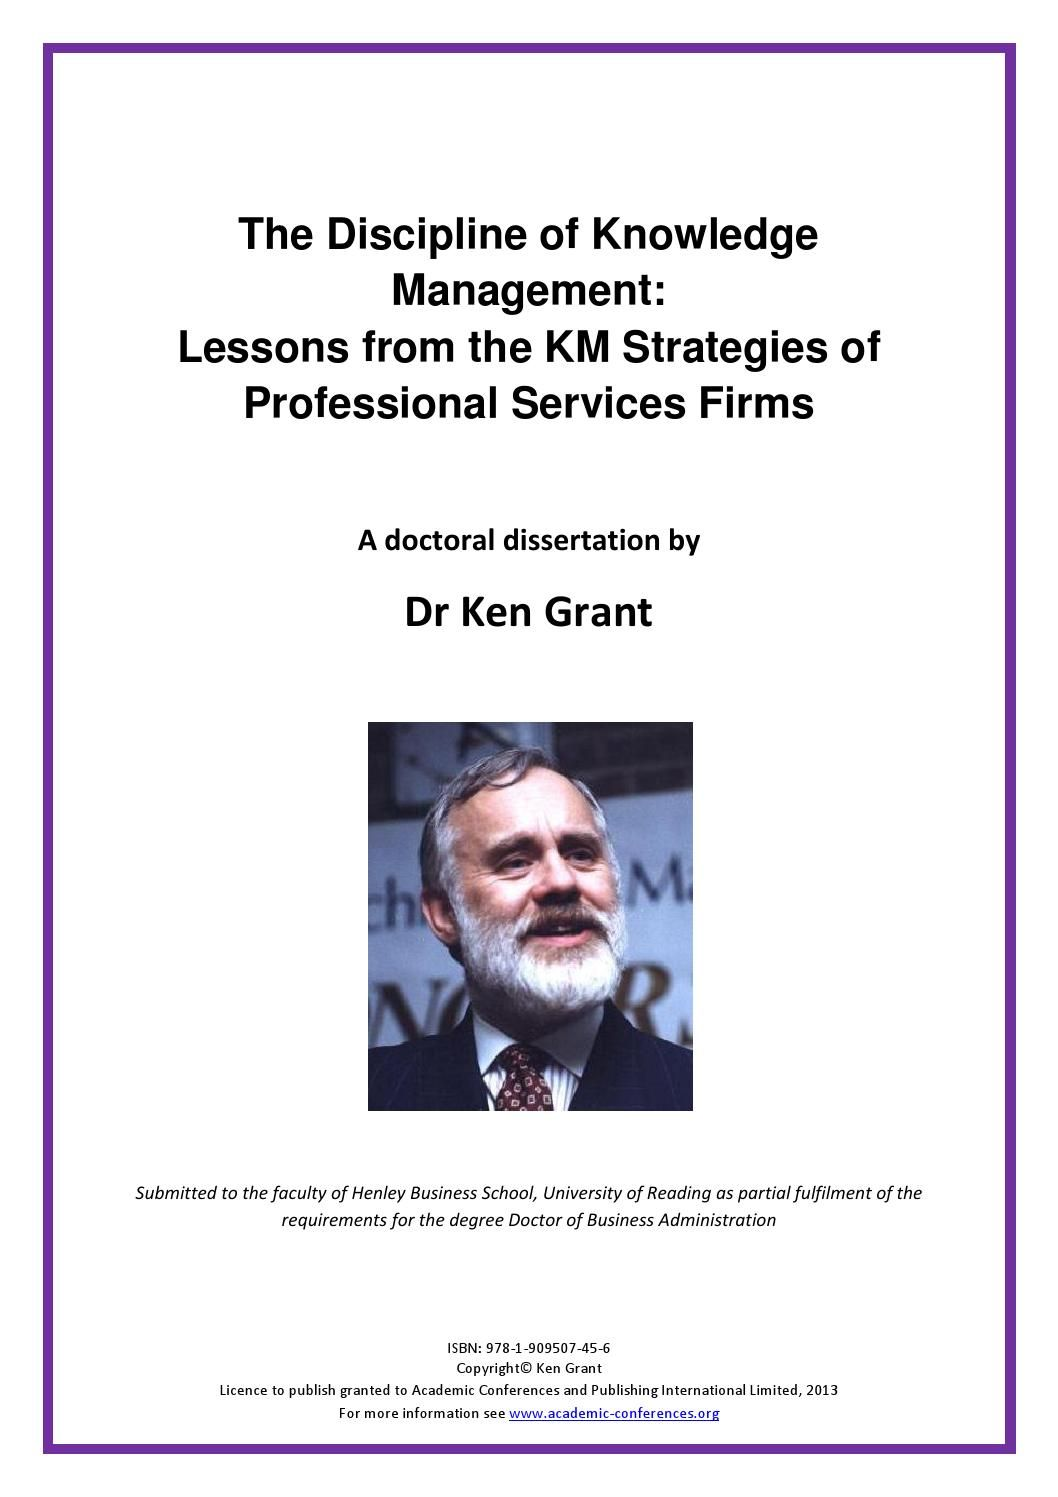 The Discipline Of Knowledge Management Lesson From Km Strategie Professional Service Henley Busines School Degree Doctor Administration Dissertation